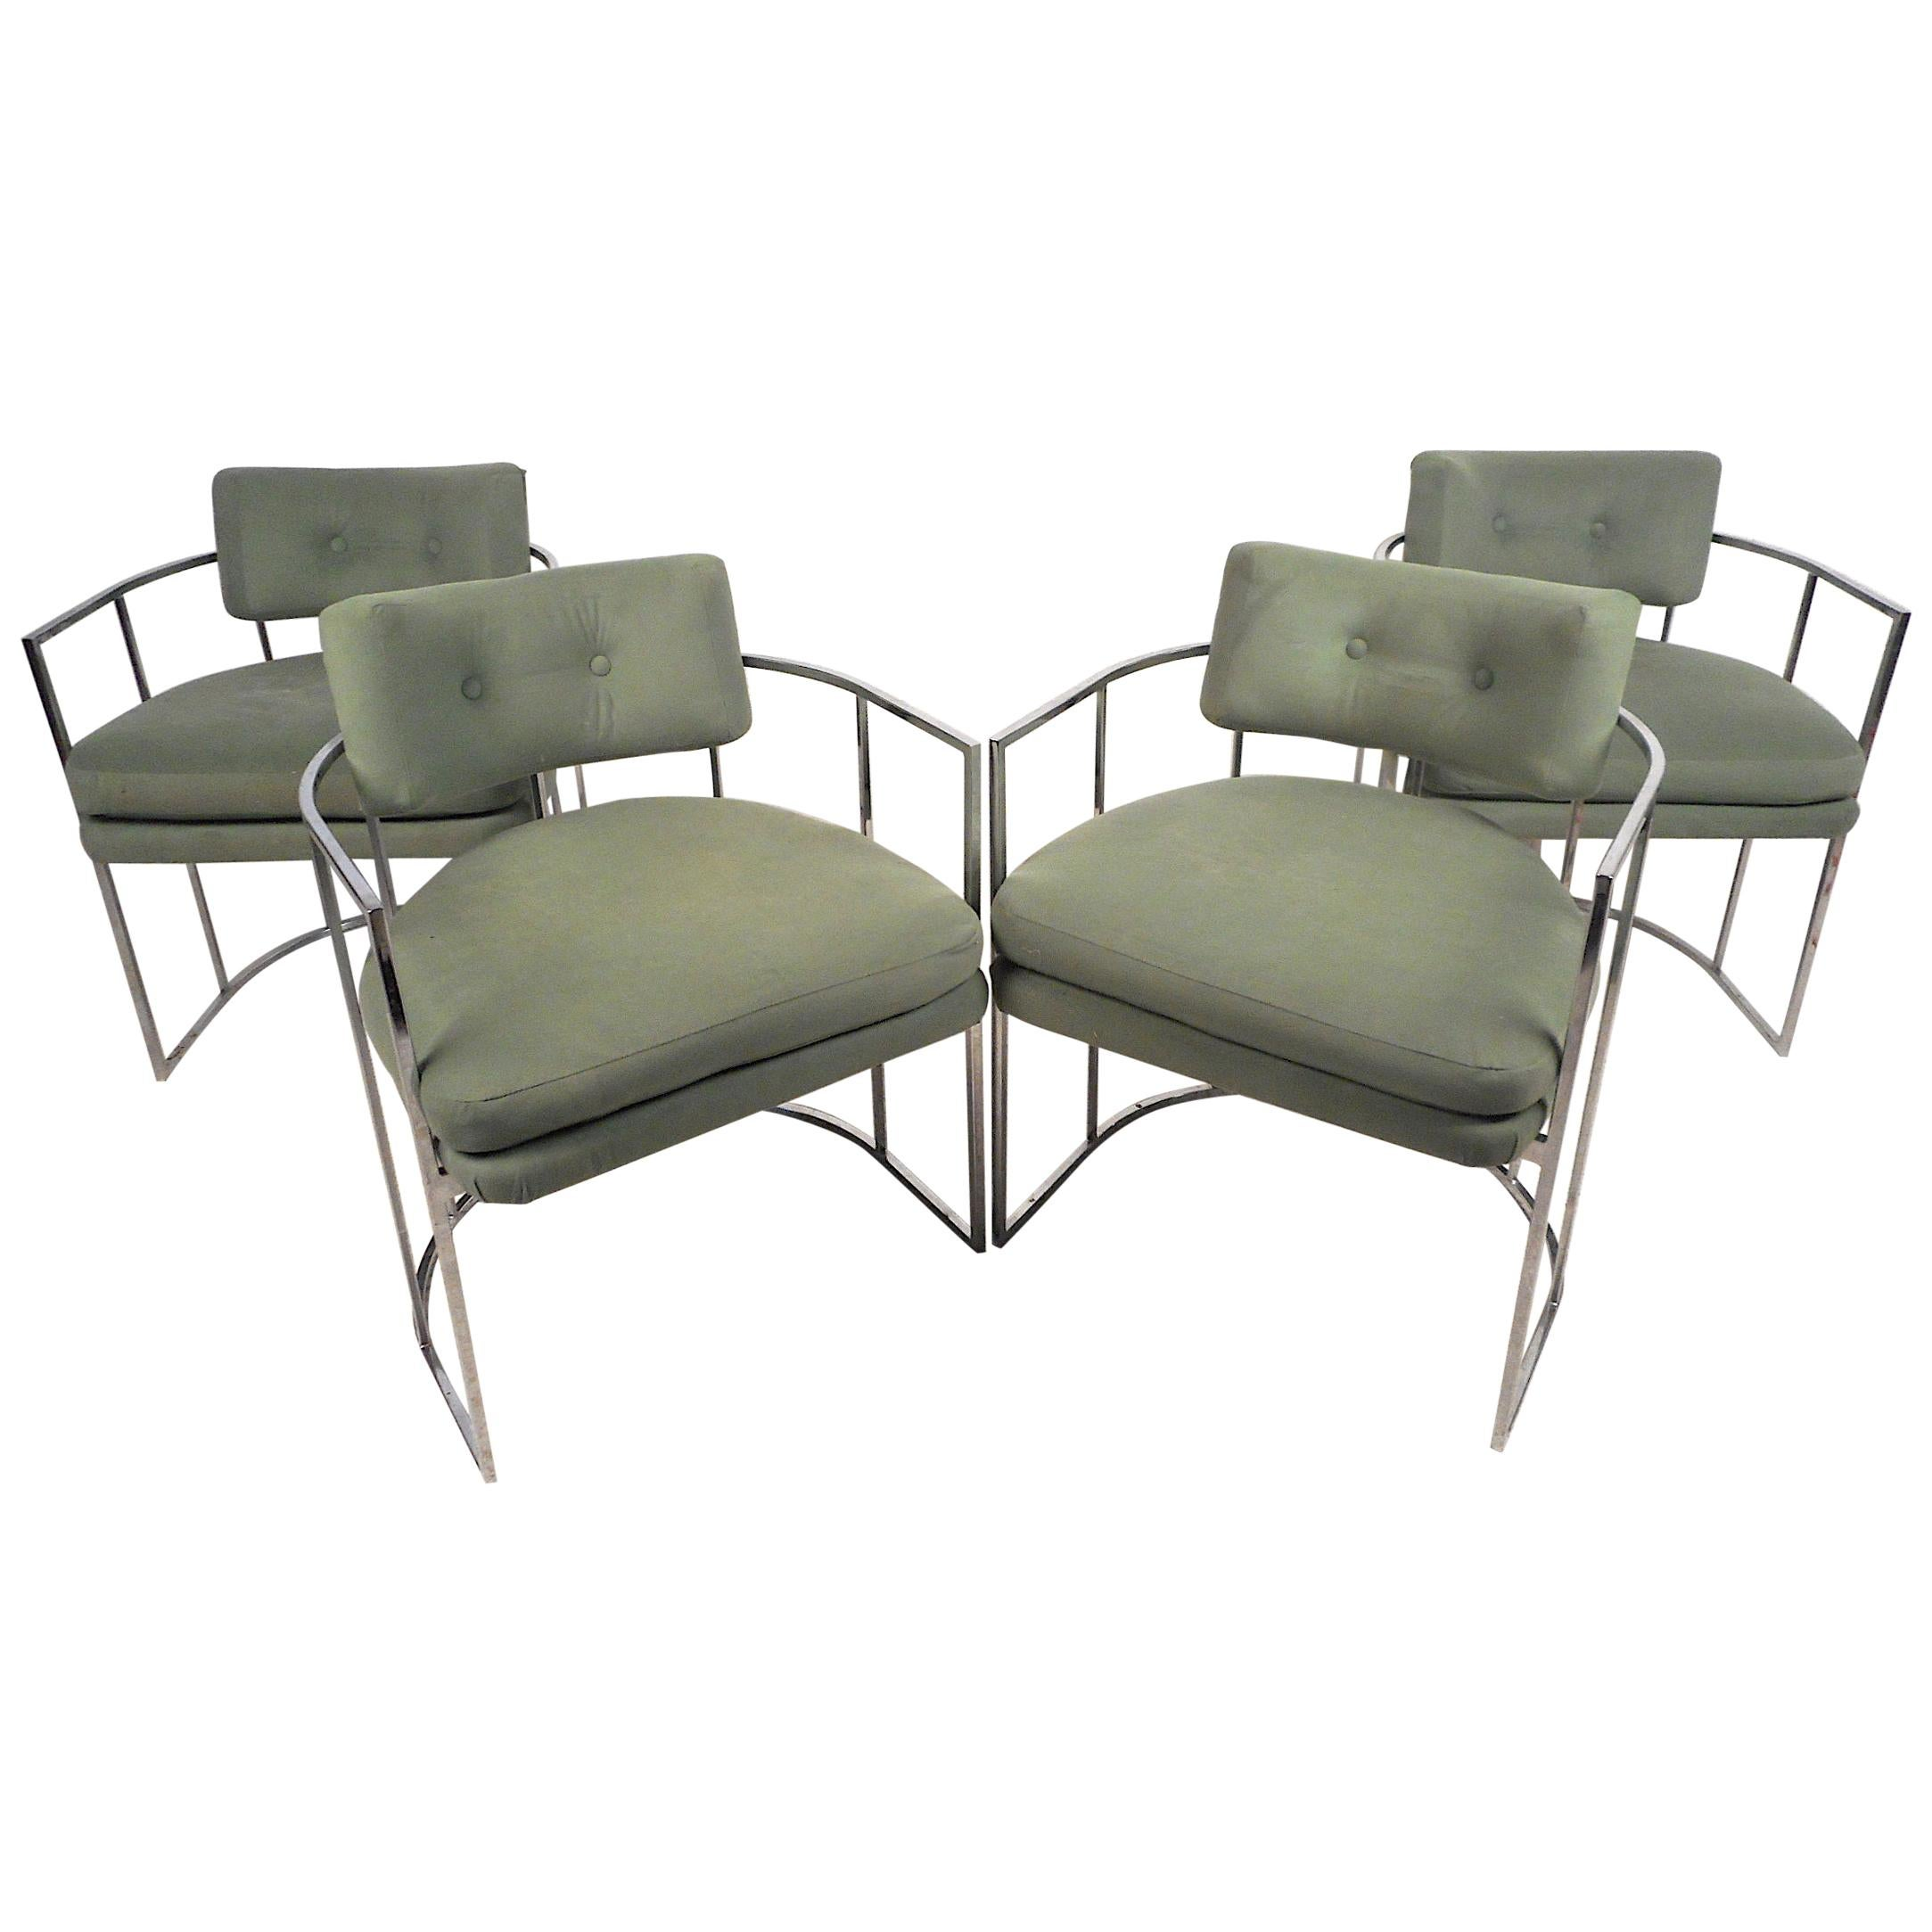 Chrome Barrel Back Dining Chairs by Milo Baughman, Set of 4